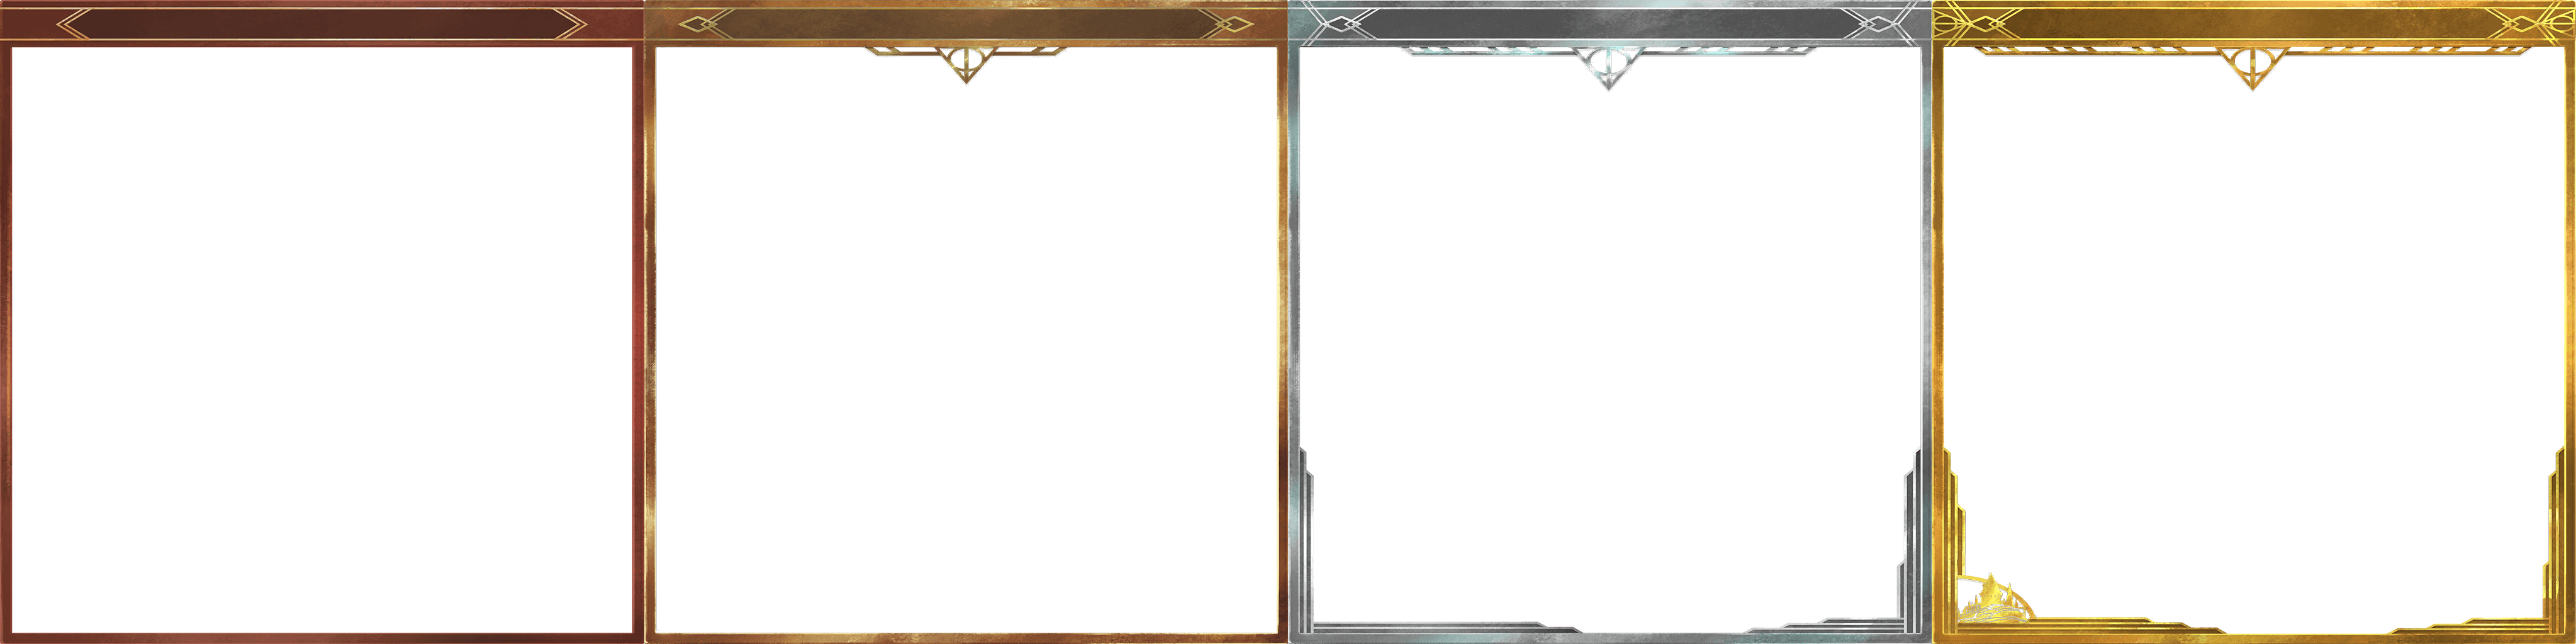 Prestige Rank borders